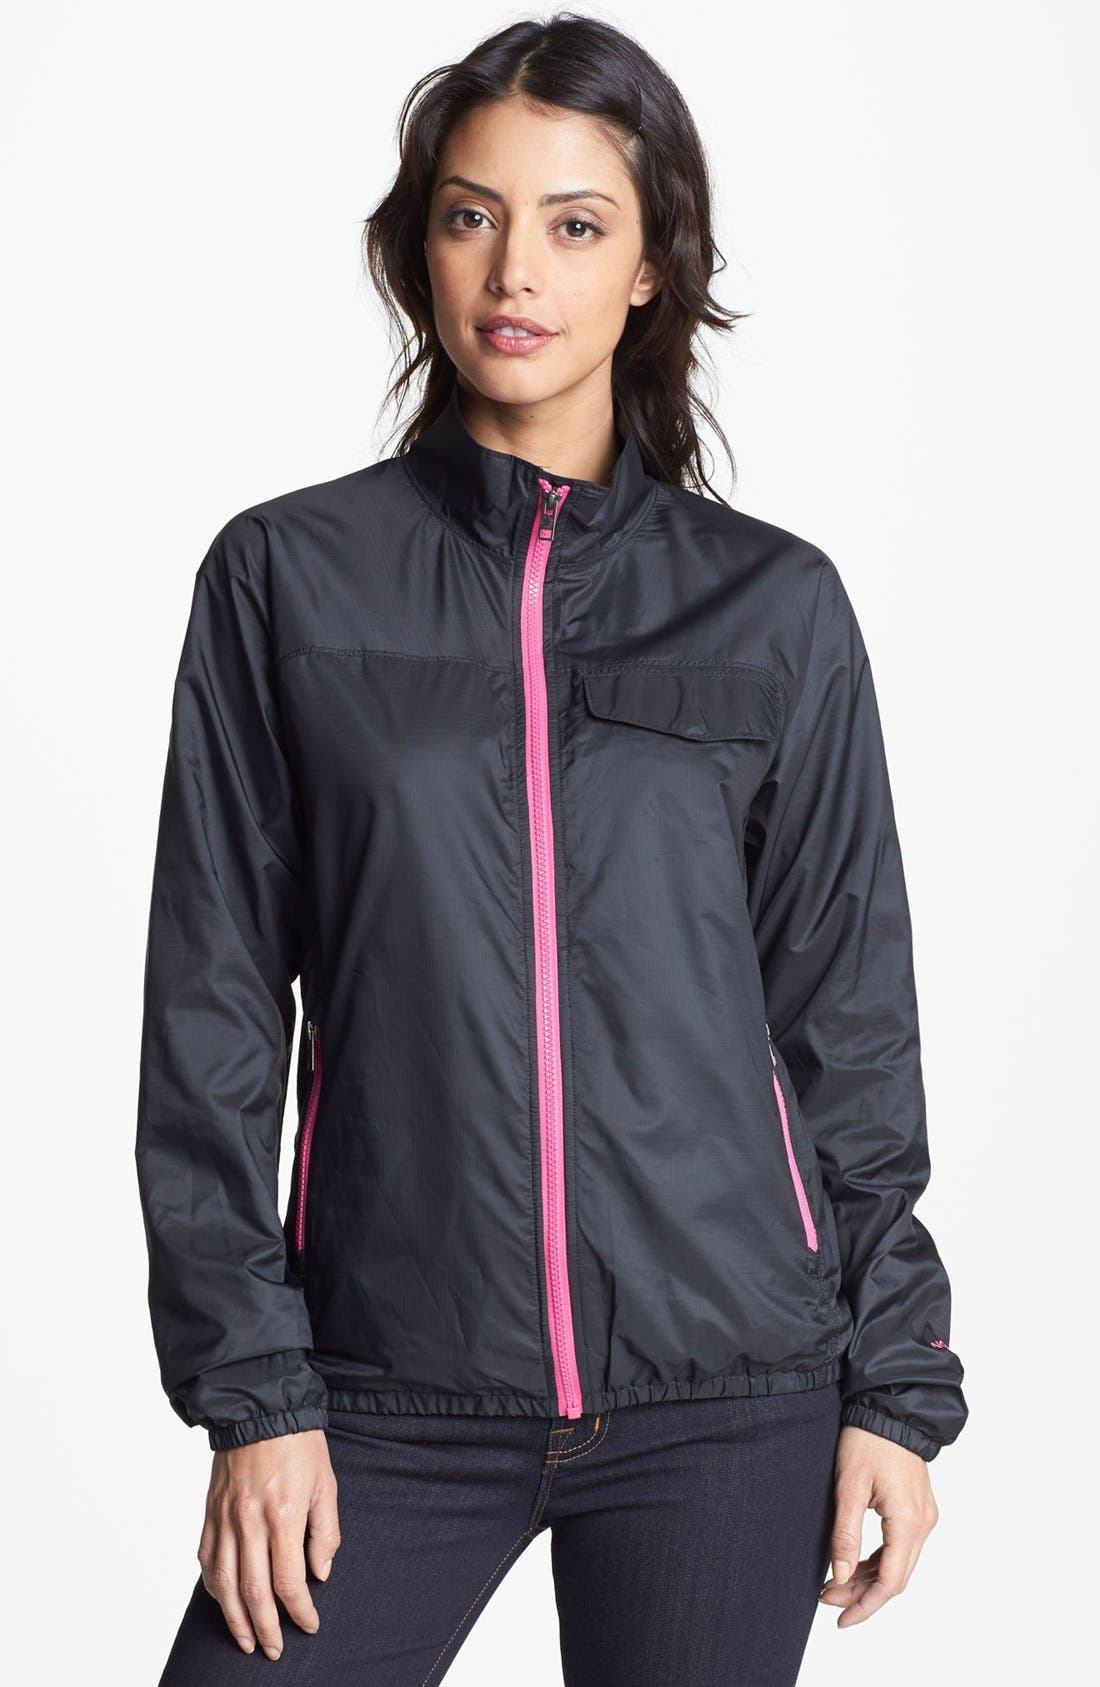 Main Image - The North Face 'Penelope' Jacket